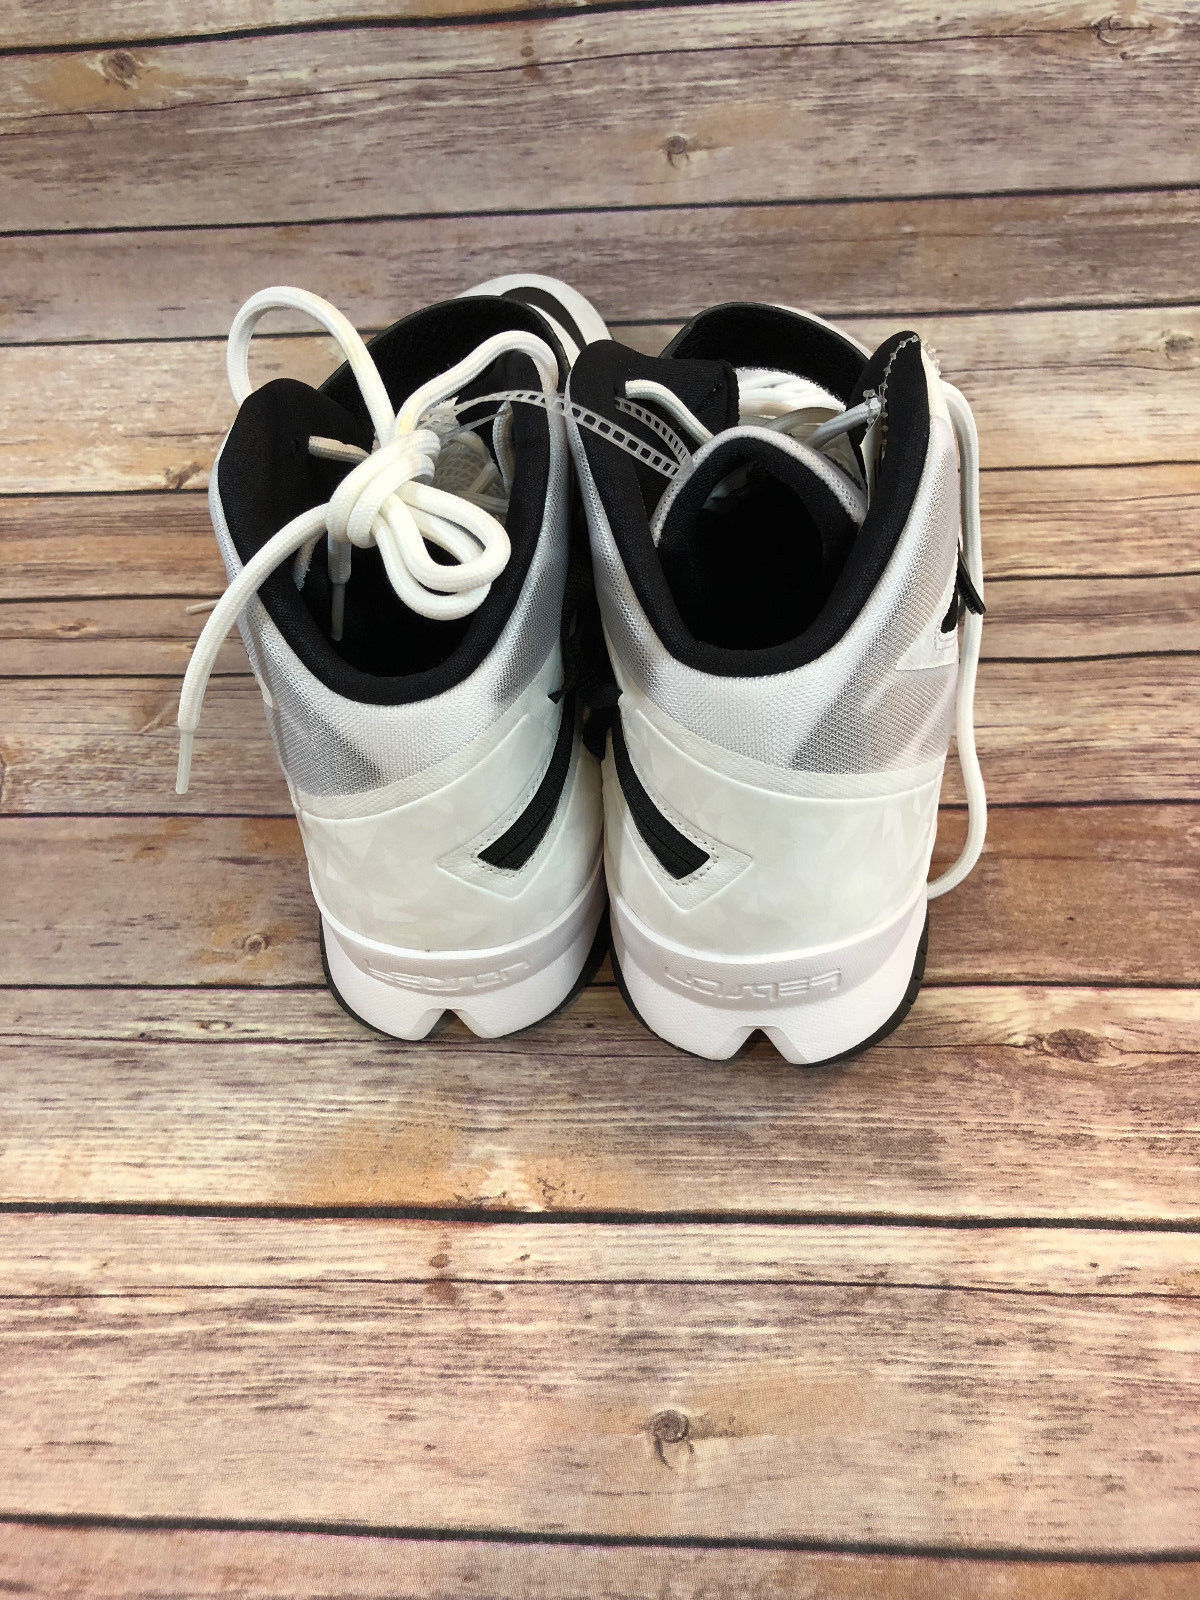 7401a639688fd NIKE 653648-100 LEBRON ZOOM SOLDIER 8 White   Black Basketball Shoes Size 18